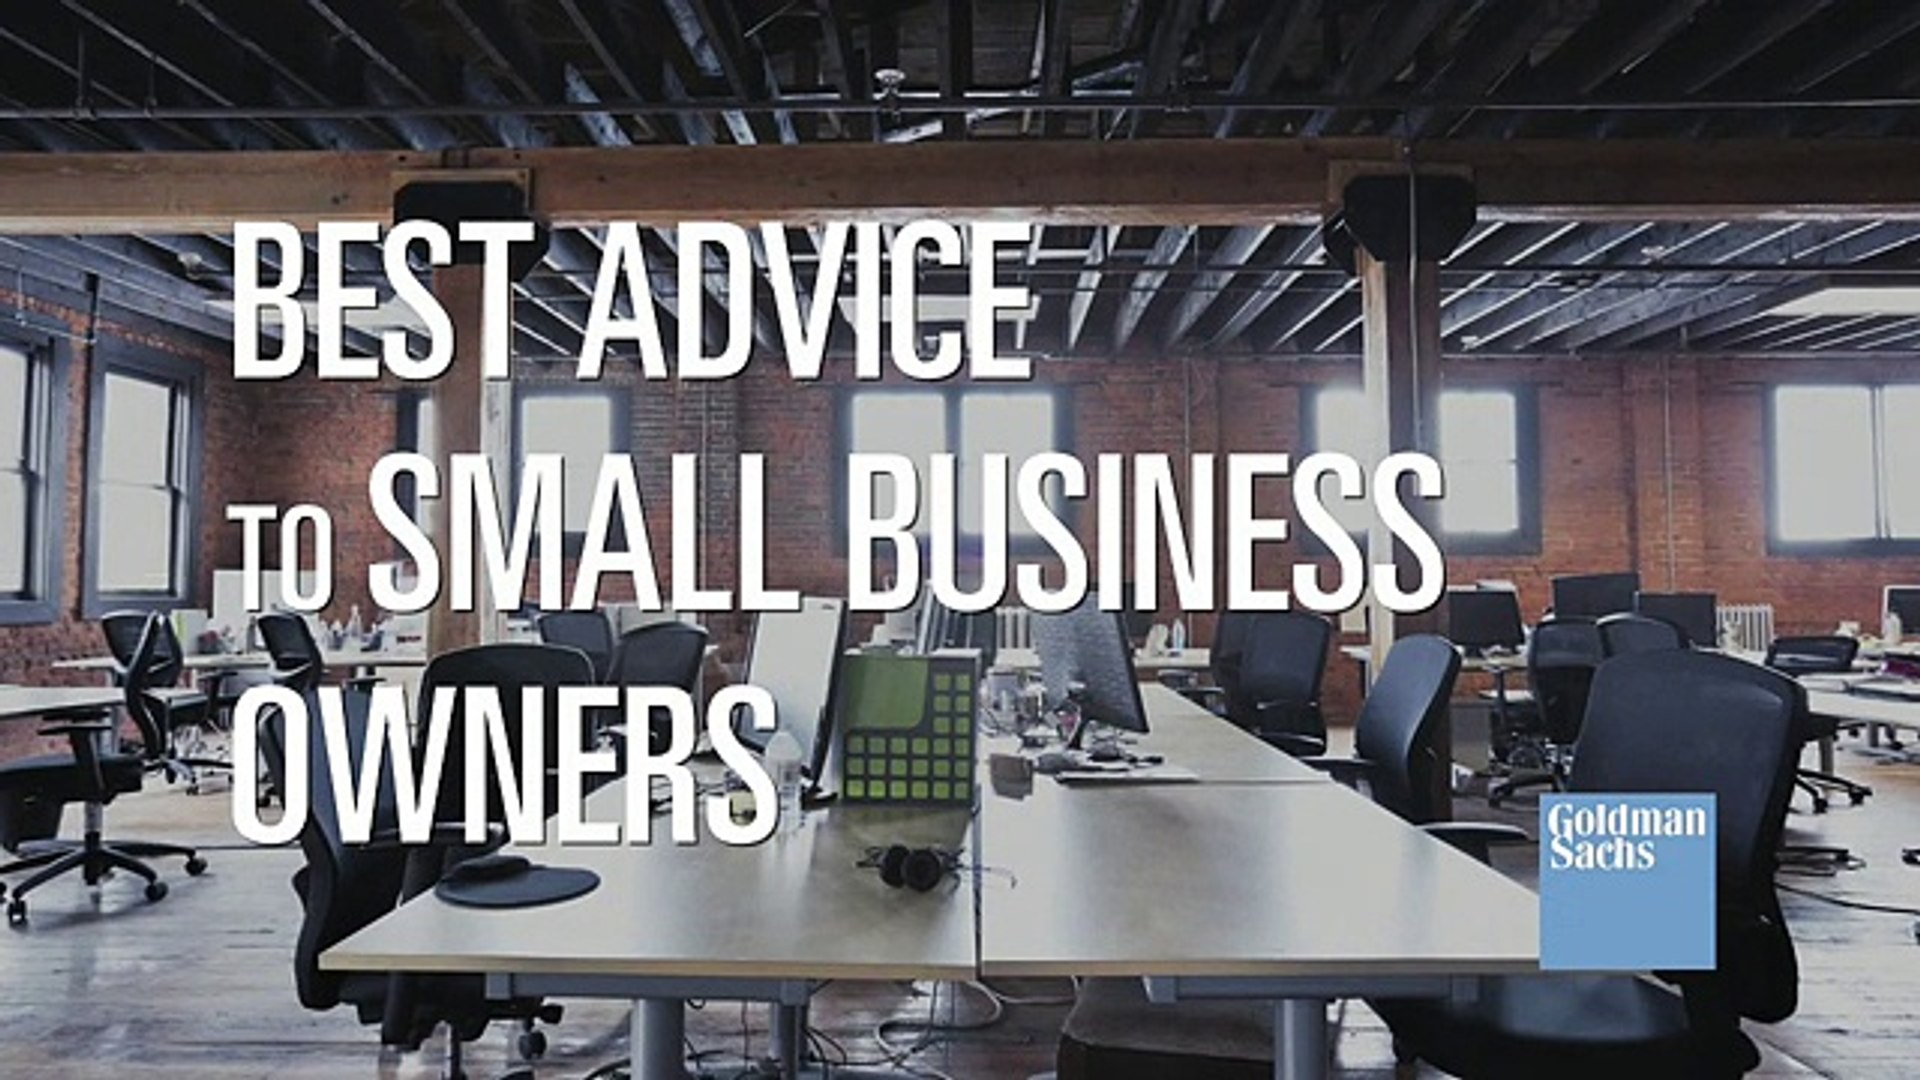 Best Advice to Small Business Owners